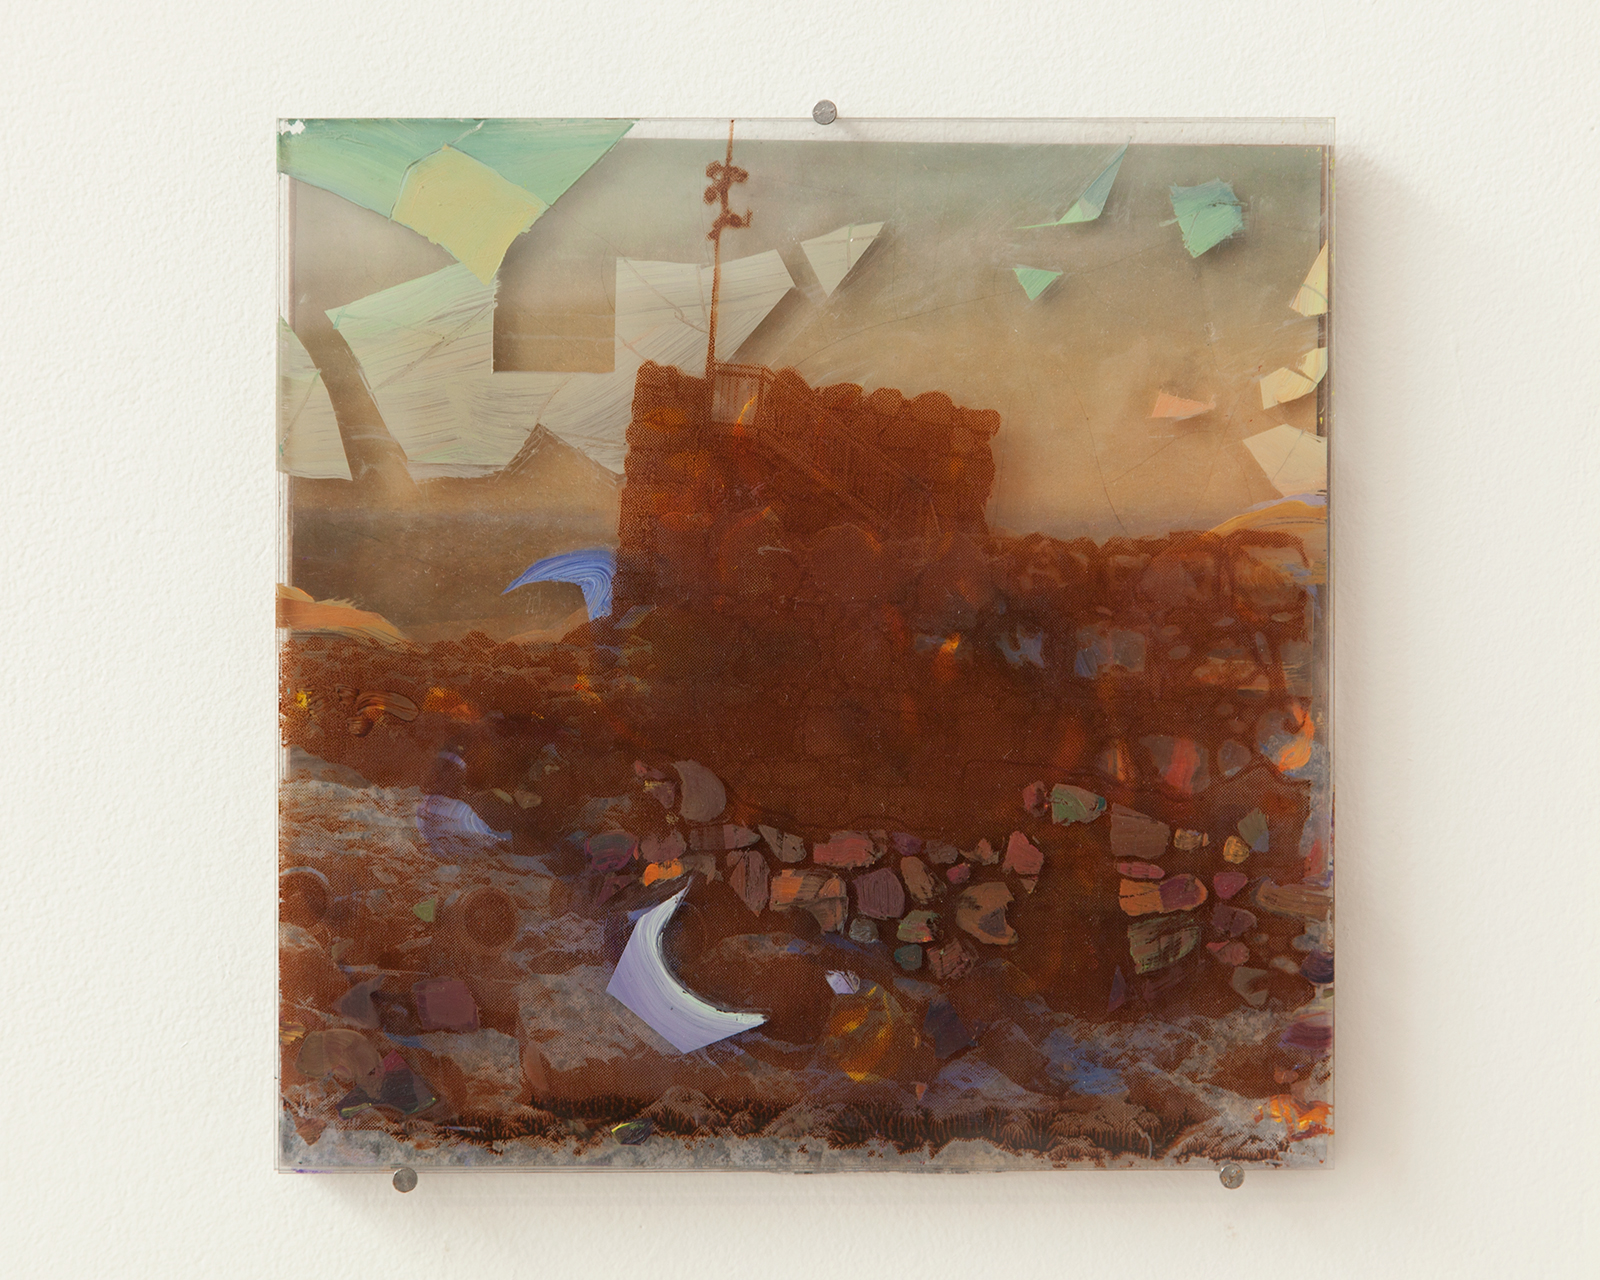 2014, Oil and silkscreen on plexiglass, photo, found material,10 x 10 inches